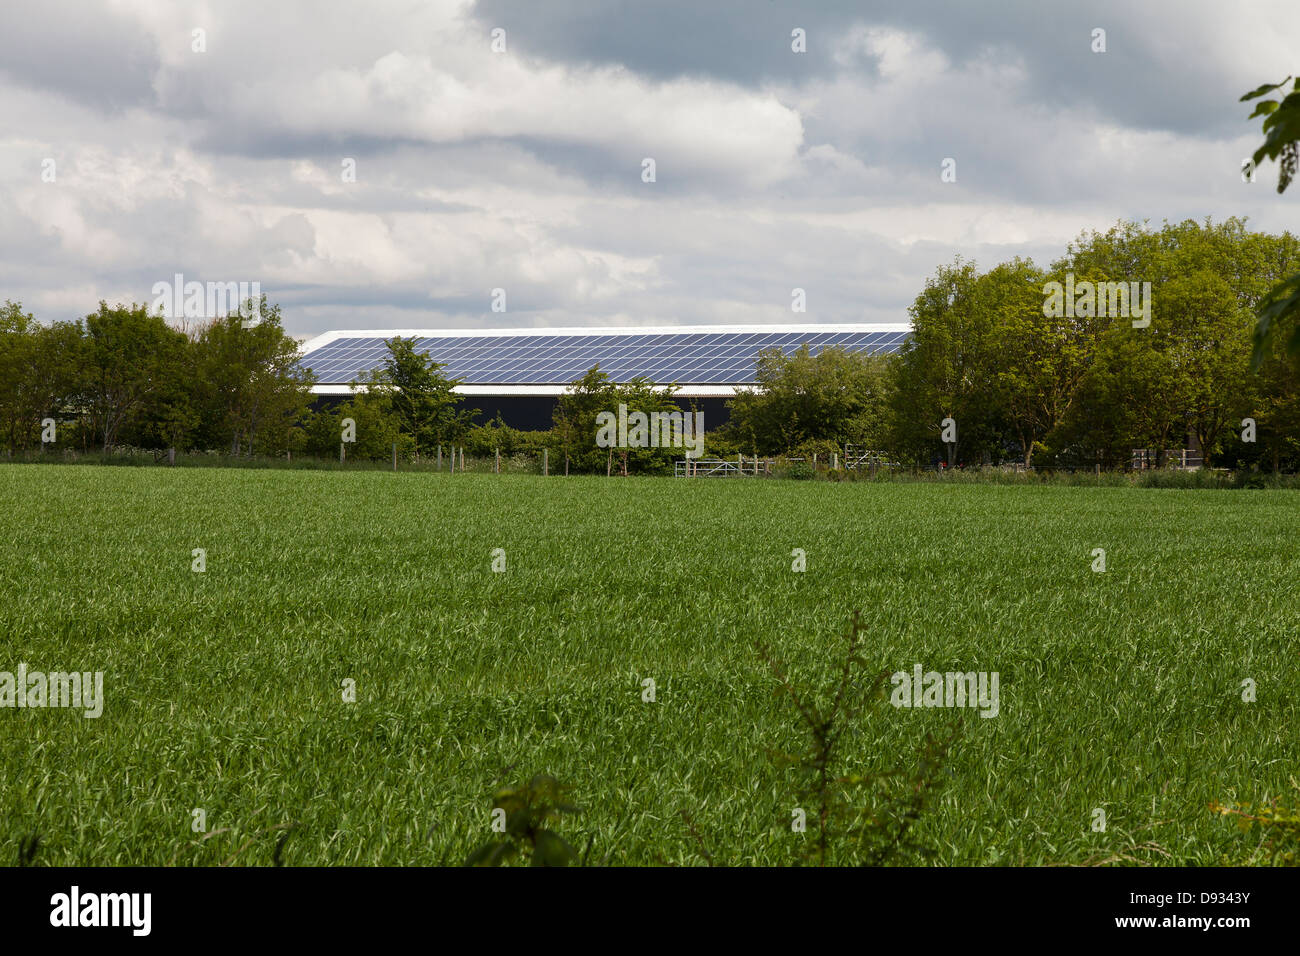 Solar panels on large farm building Hampshire UK - Stock Image